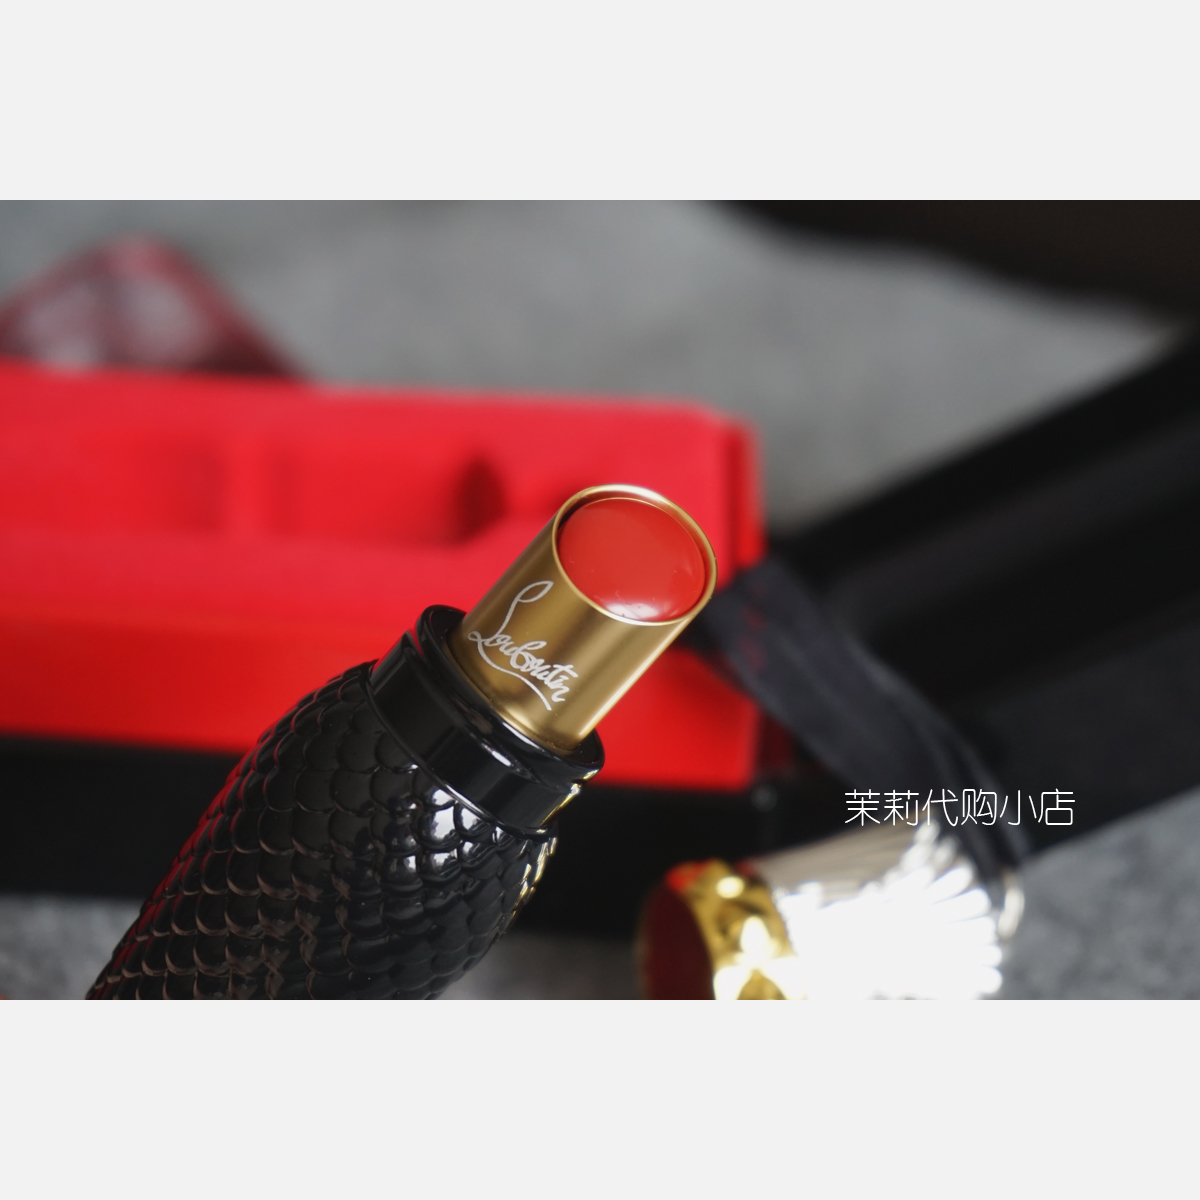 c19d3950db4 Spot Christian Louboutin CL mouth carrot black pipe lipstick 001m 001S ·  Zoom · lightbox moreview · lightbox moreview · lightbox moreview · lightbox  ...